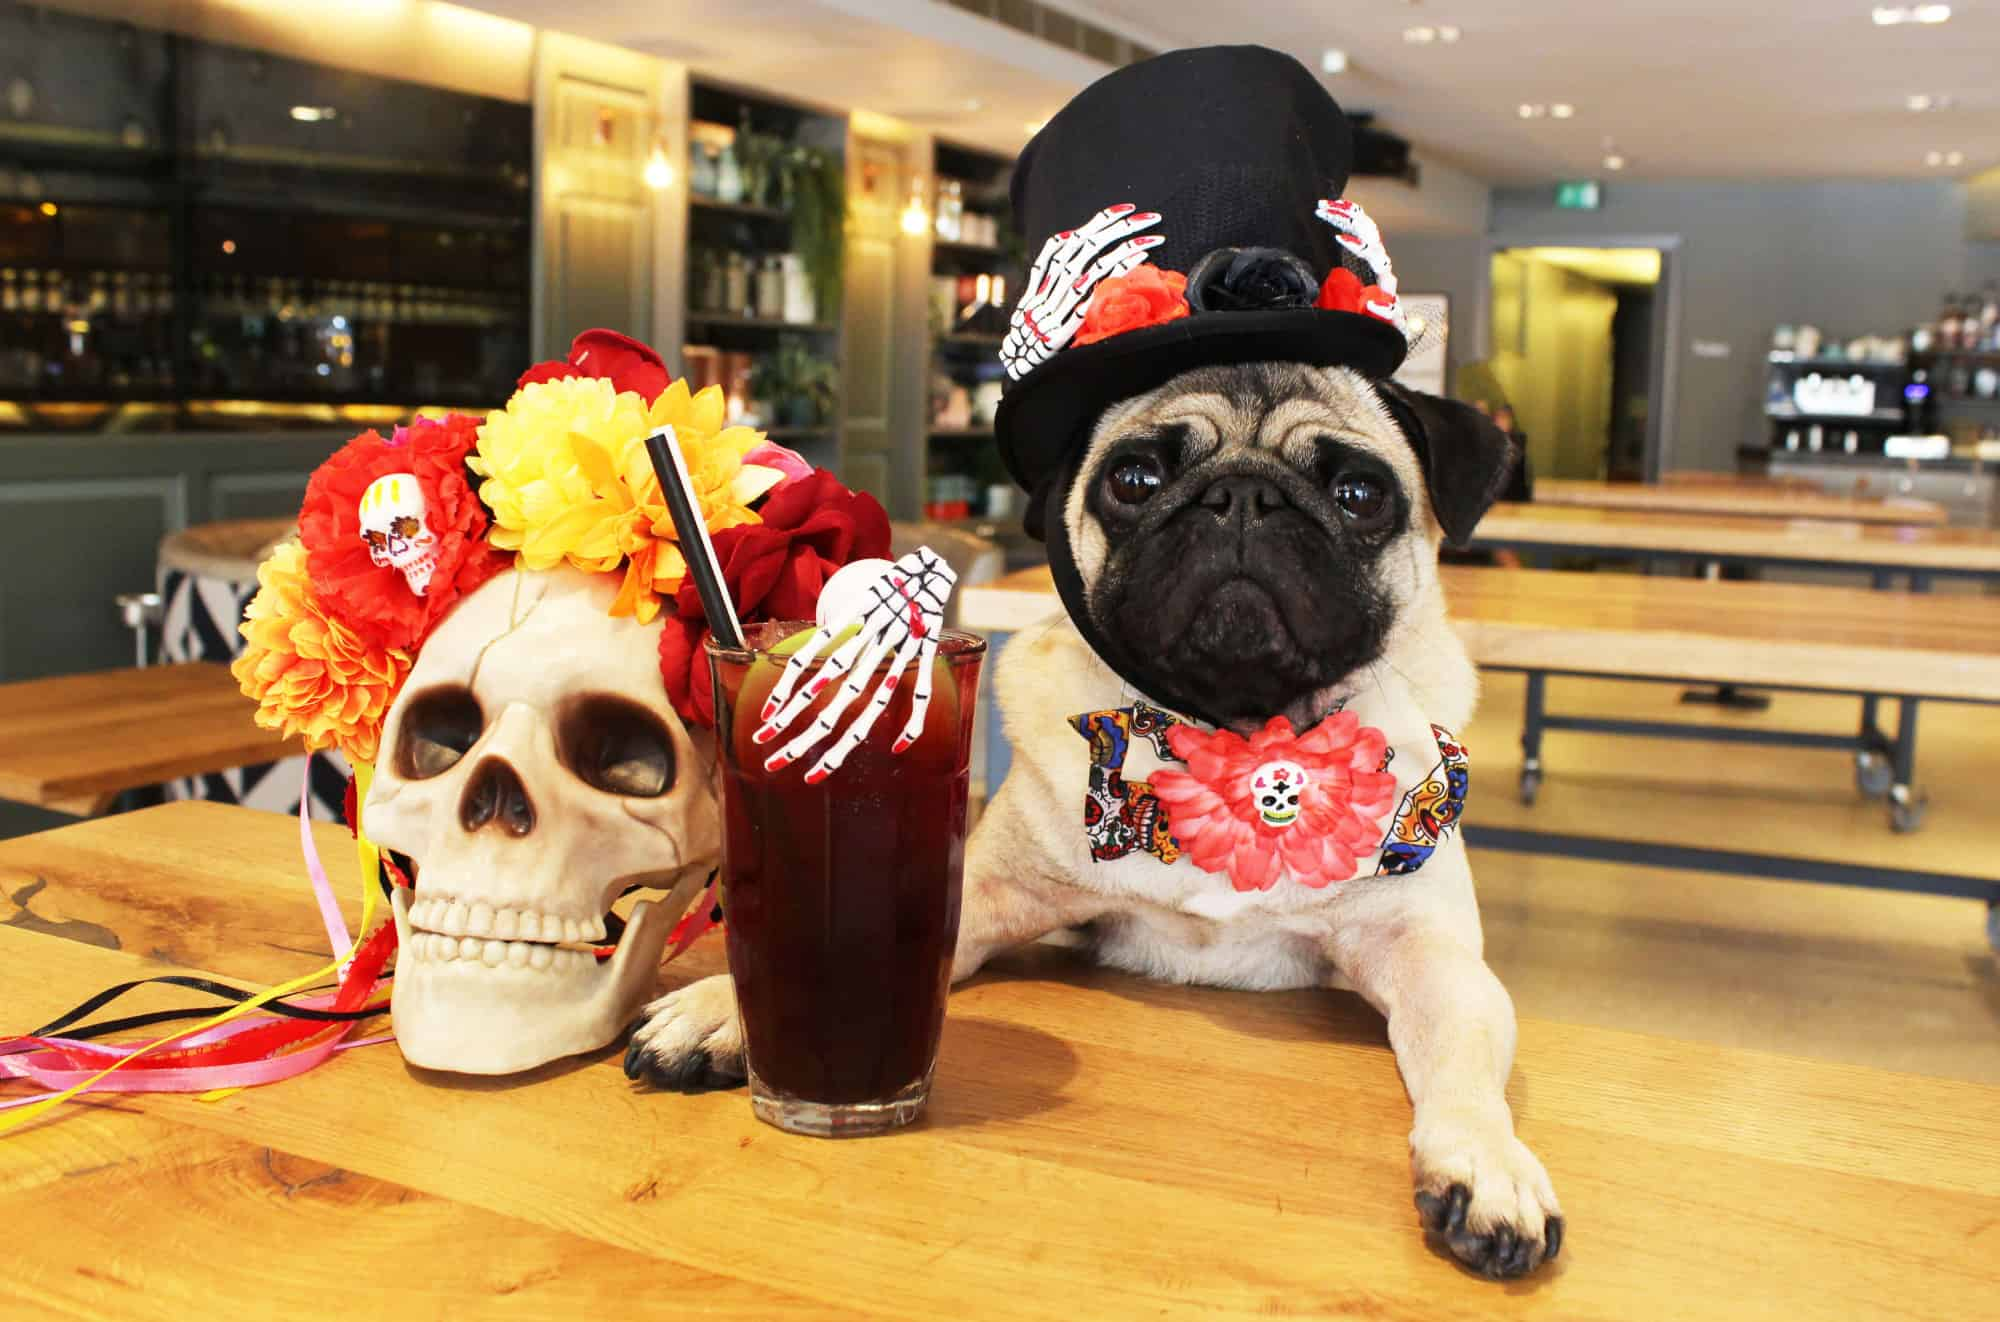 Pug Cafe London Day of the Dead Howl-O-Ween